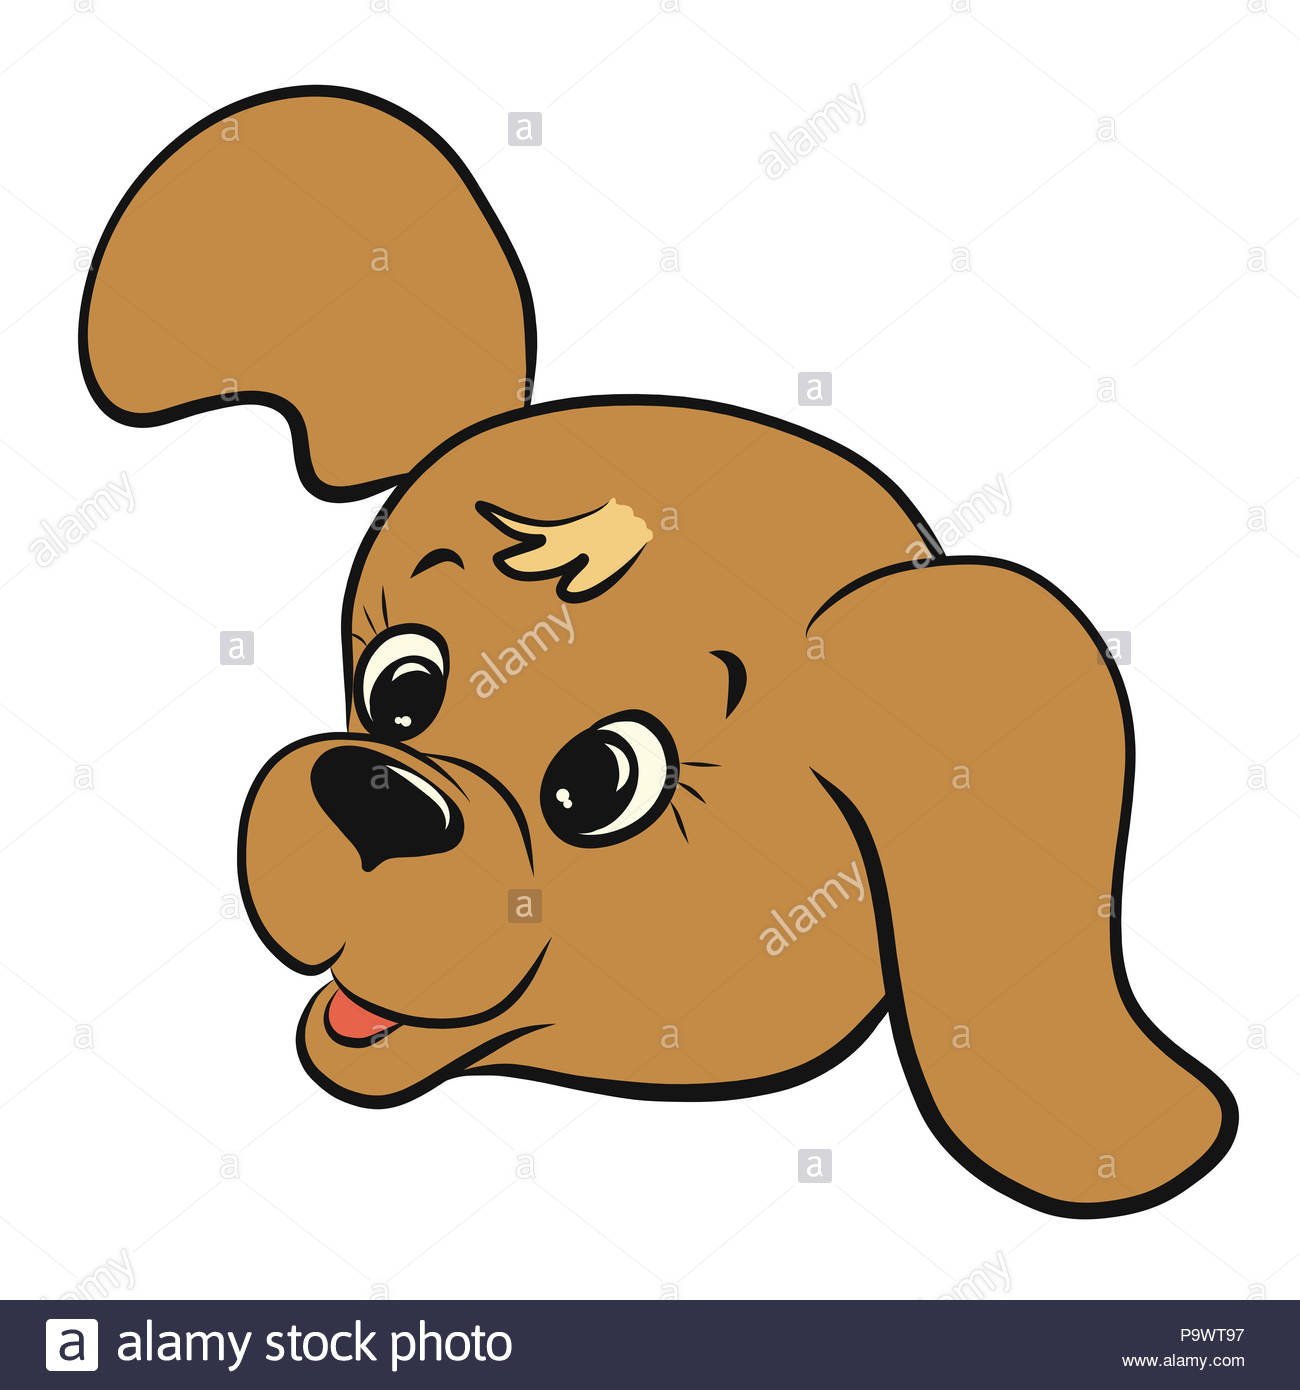 A small funny joyful puppy with long ears, a head - Stock Image